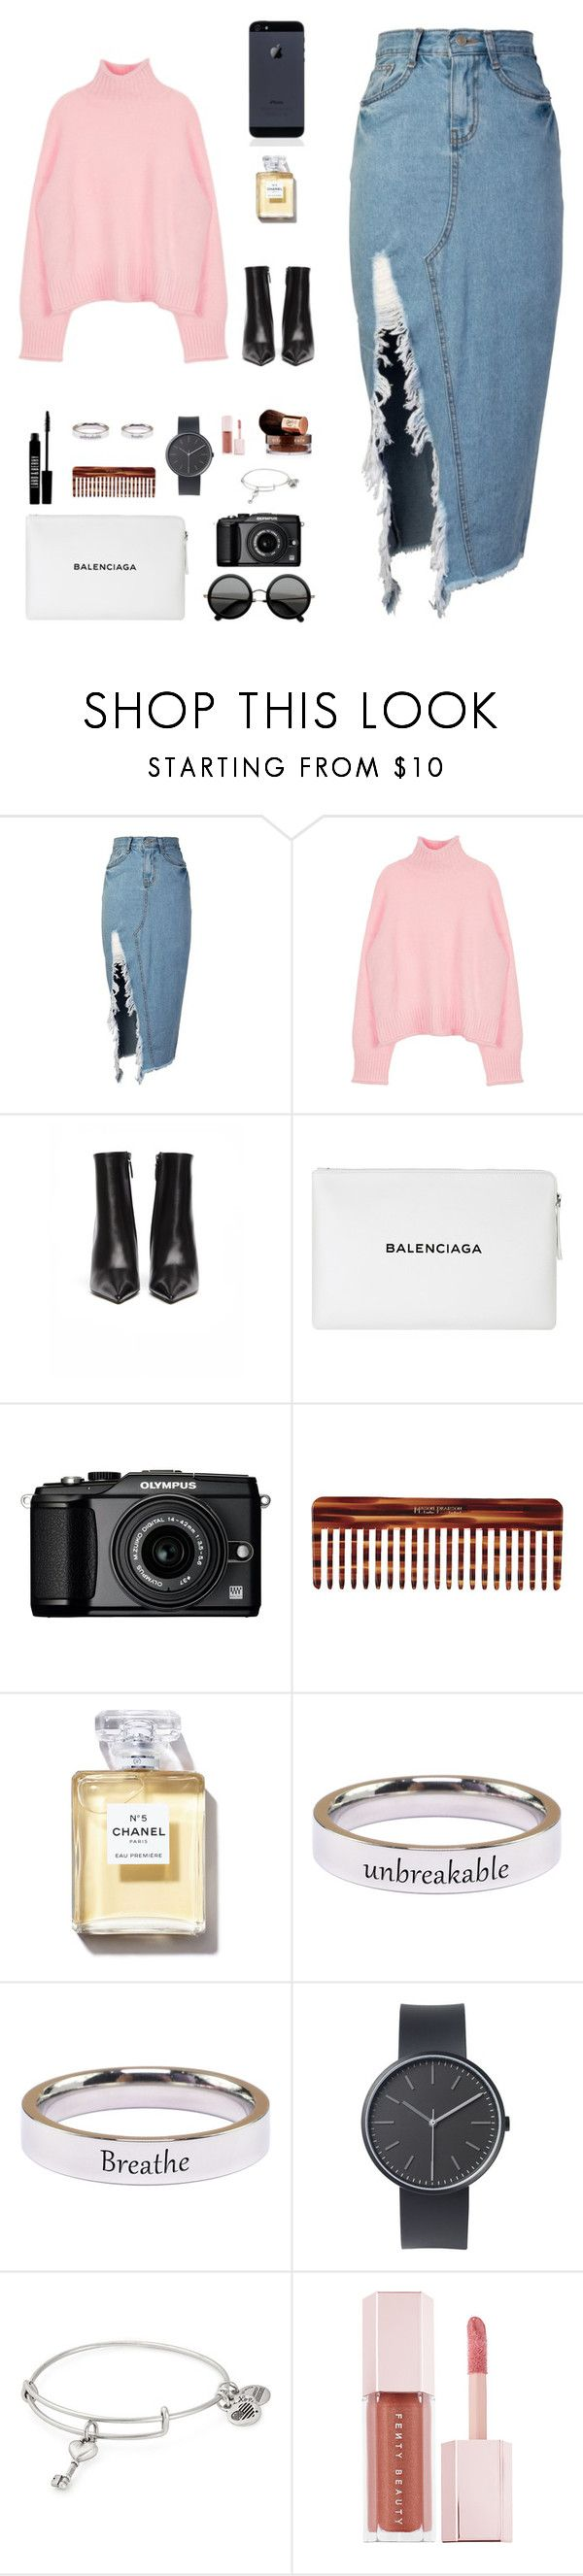 """""""Sin título #962"""" by nbl1593 ❤ liked on Polyvore featuring storets, Balenciaga, Lord & Berry, The Row, Olympus, Mason Pearson, Pink Box, Uniform Wares, Alex and Ani and Puma"""